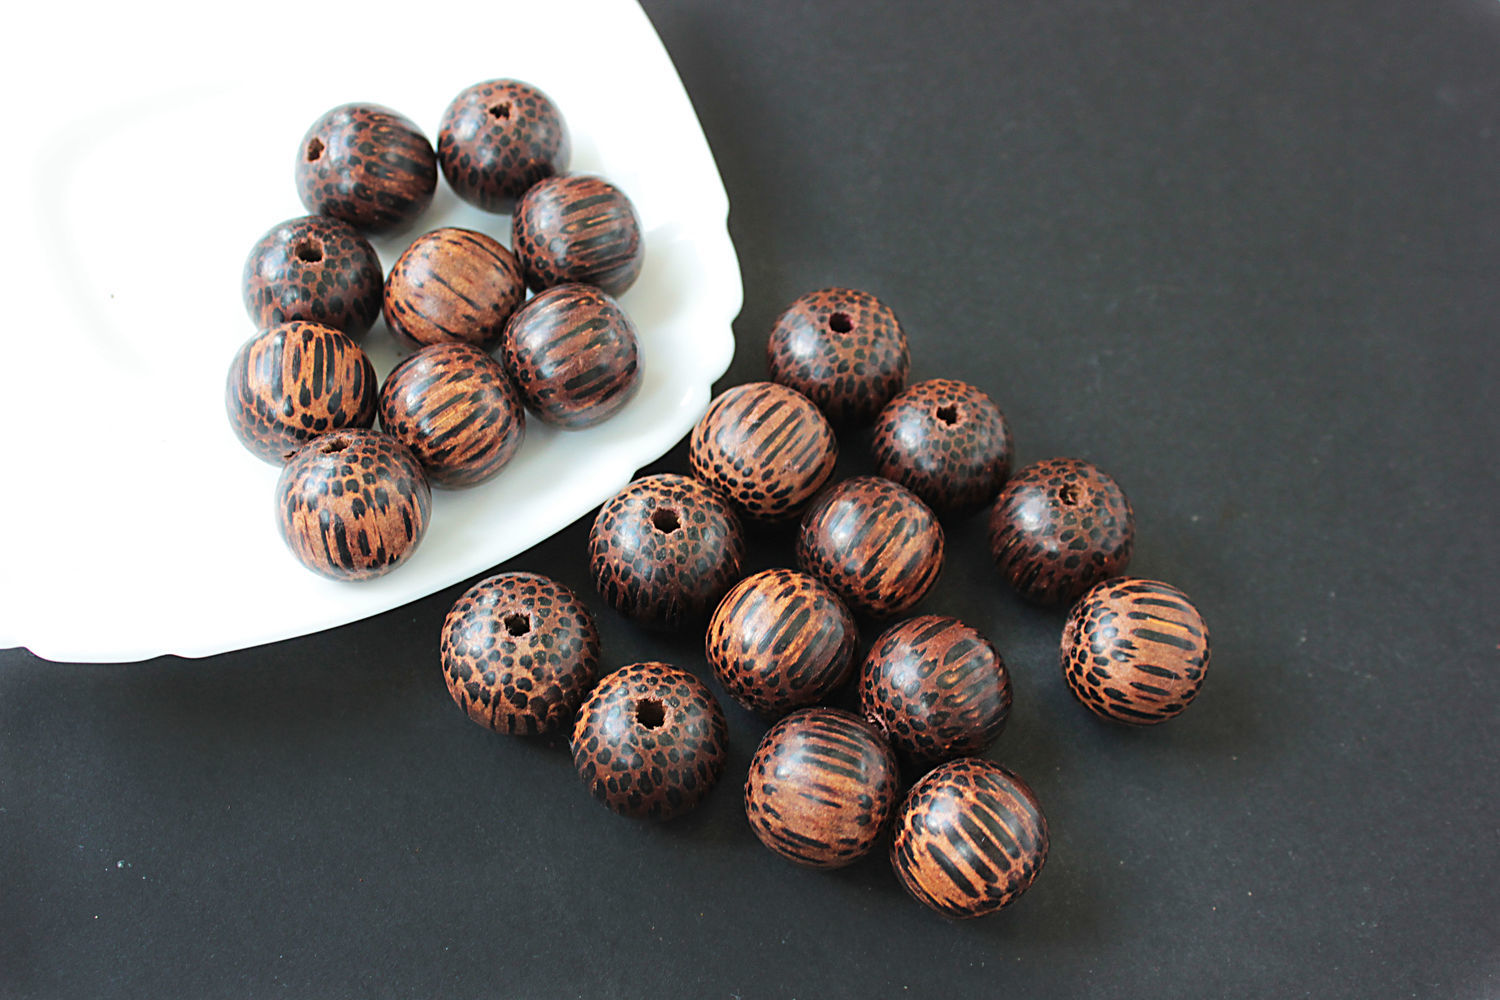 Beads old palm tree valuable tree ball 20mm, Beads1, Bryansk,  Фото №1